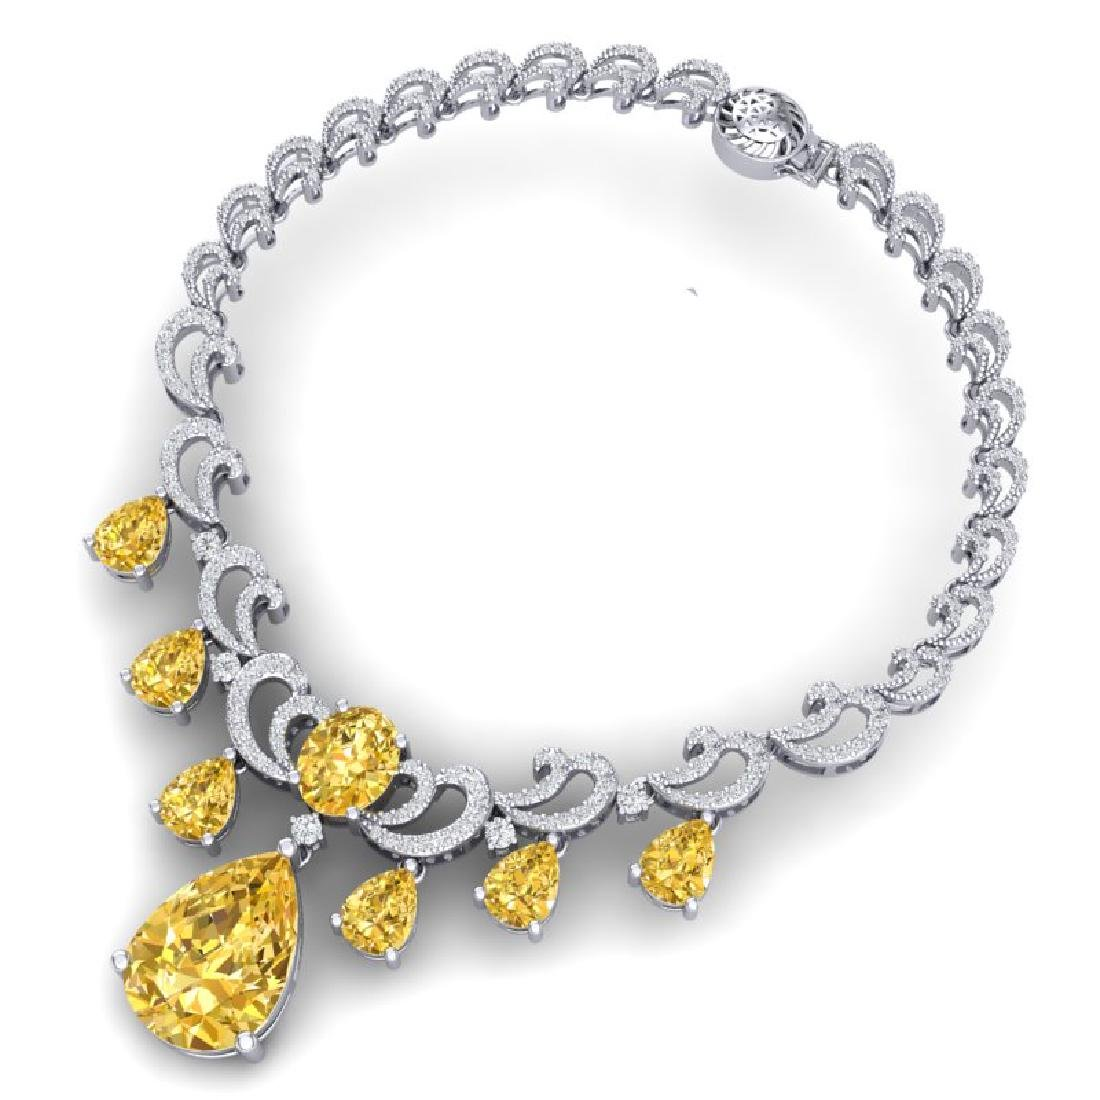 33.38 CTW Royalty Canary Citrine & VS Diamond Necklace - 3